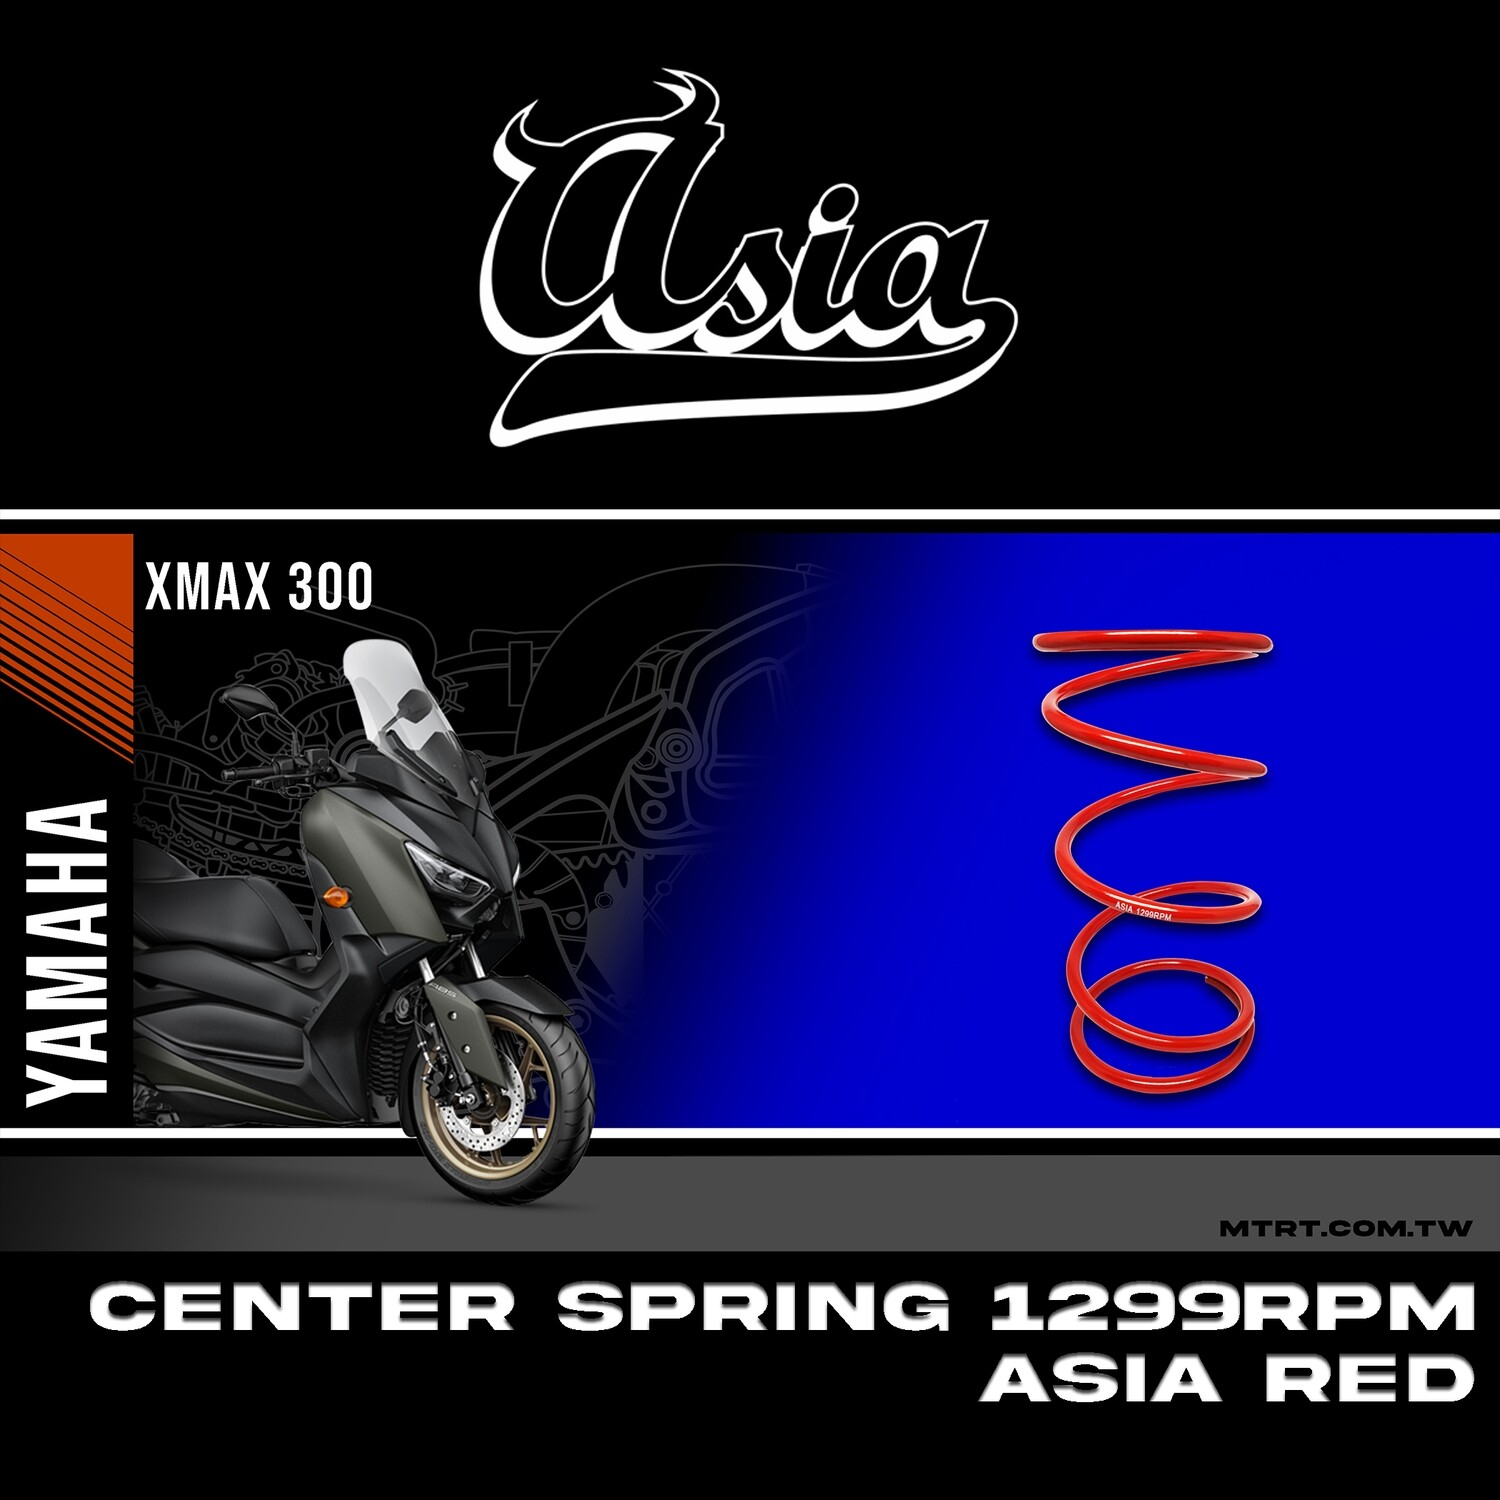 CENTER SPRING XMAX300 1299RPM  ASIA RED